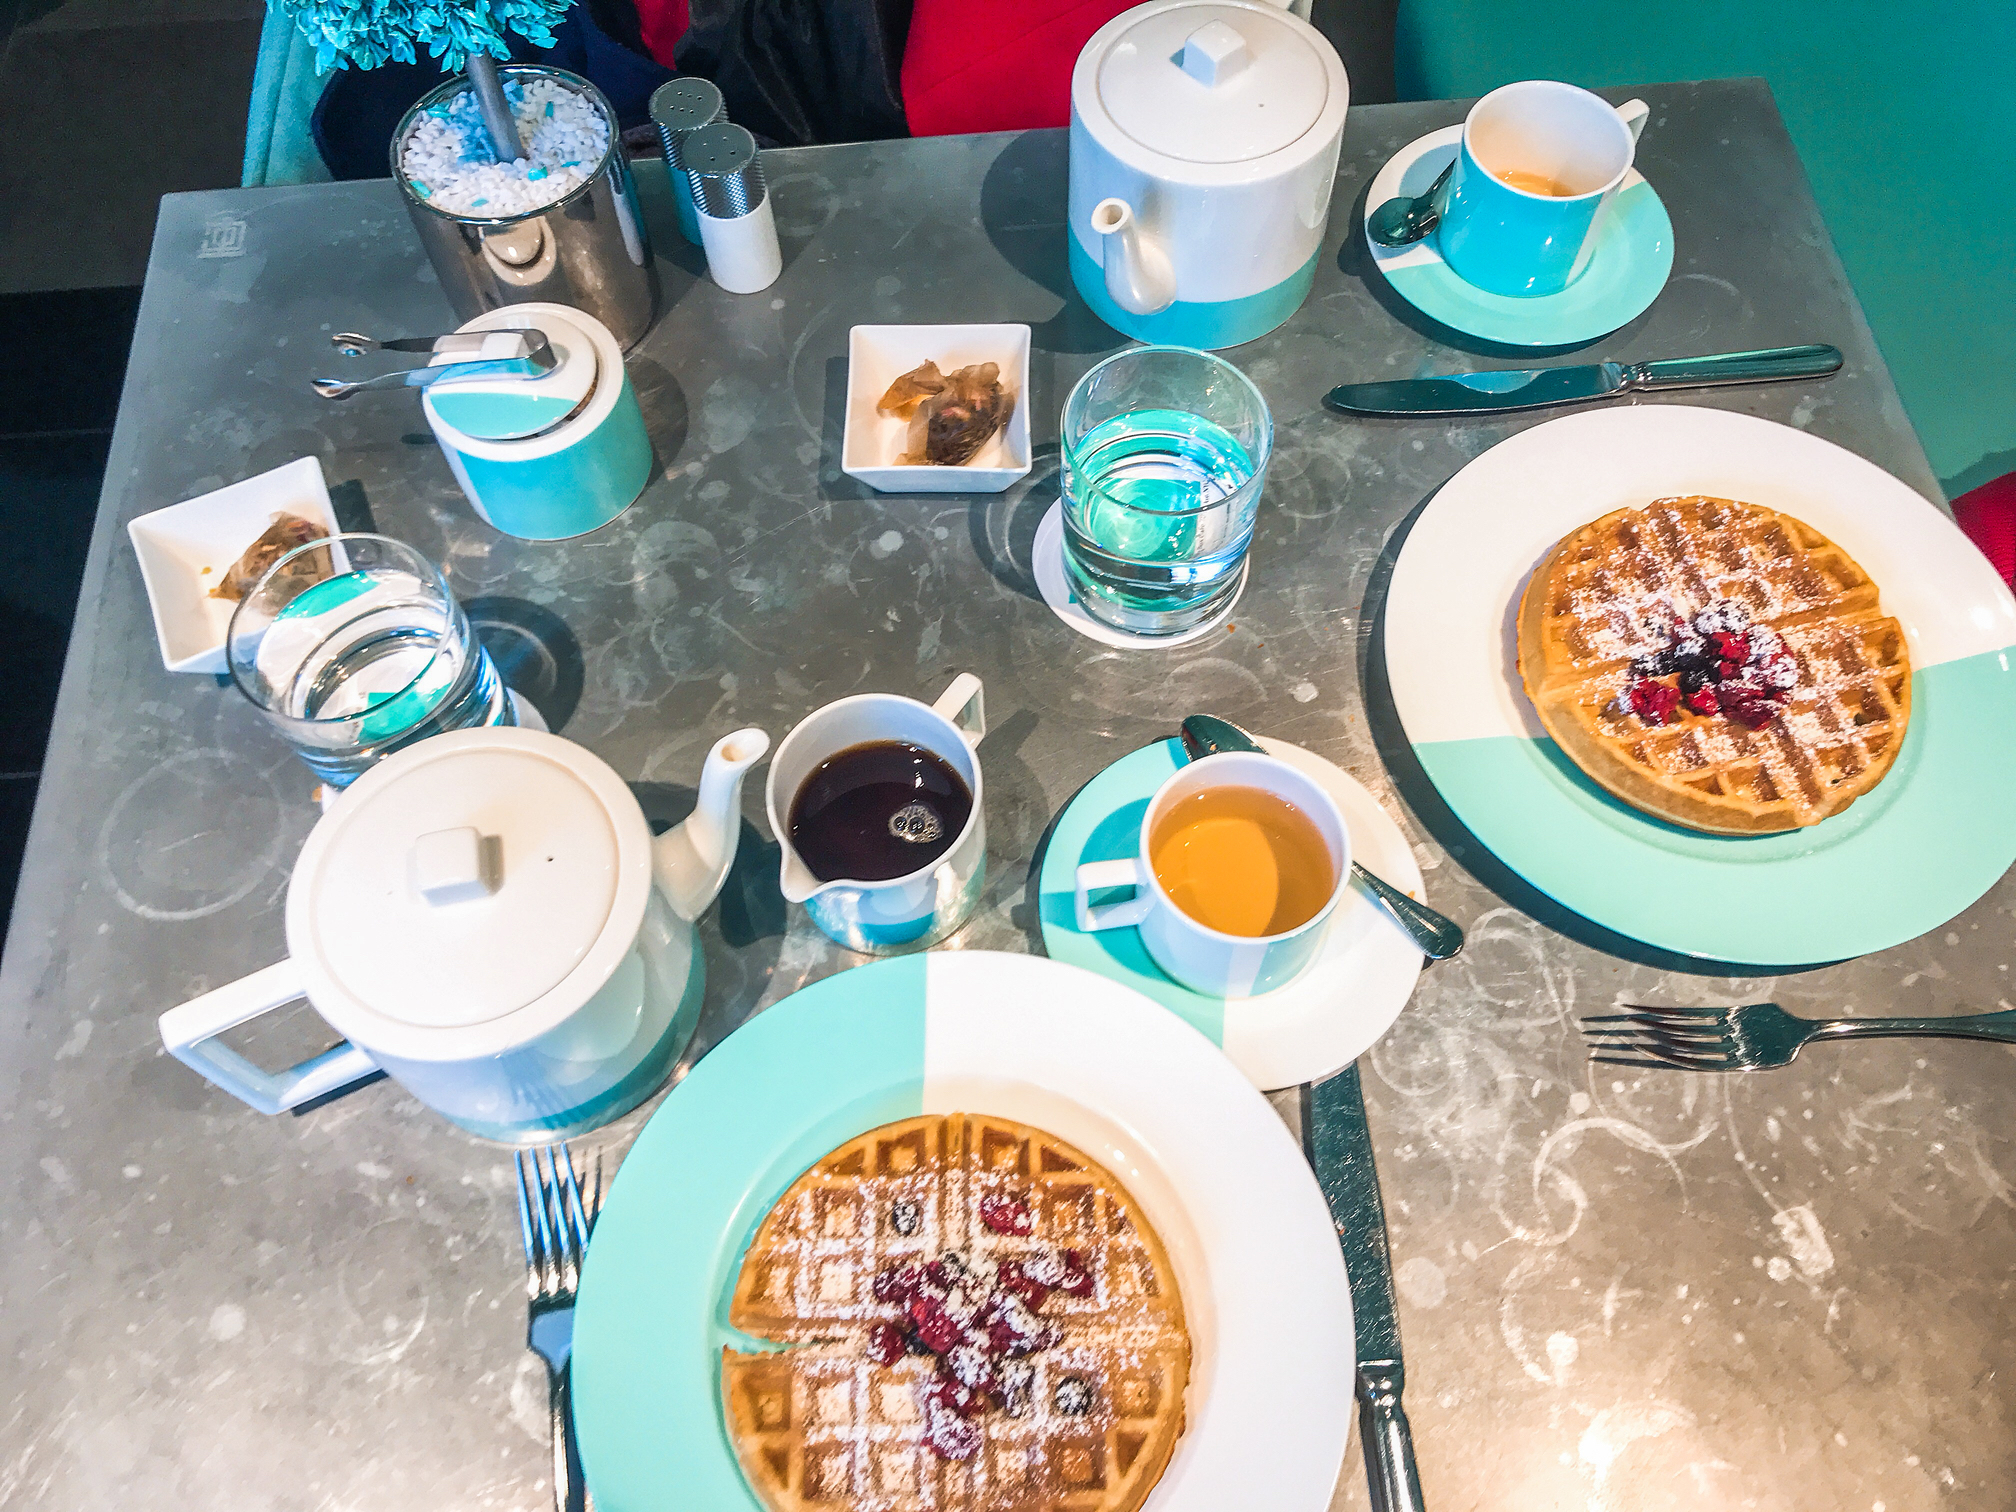 Breakfast at Tiffany's Blue Box Cafe